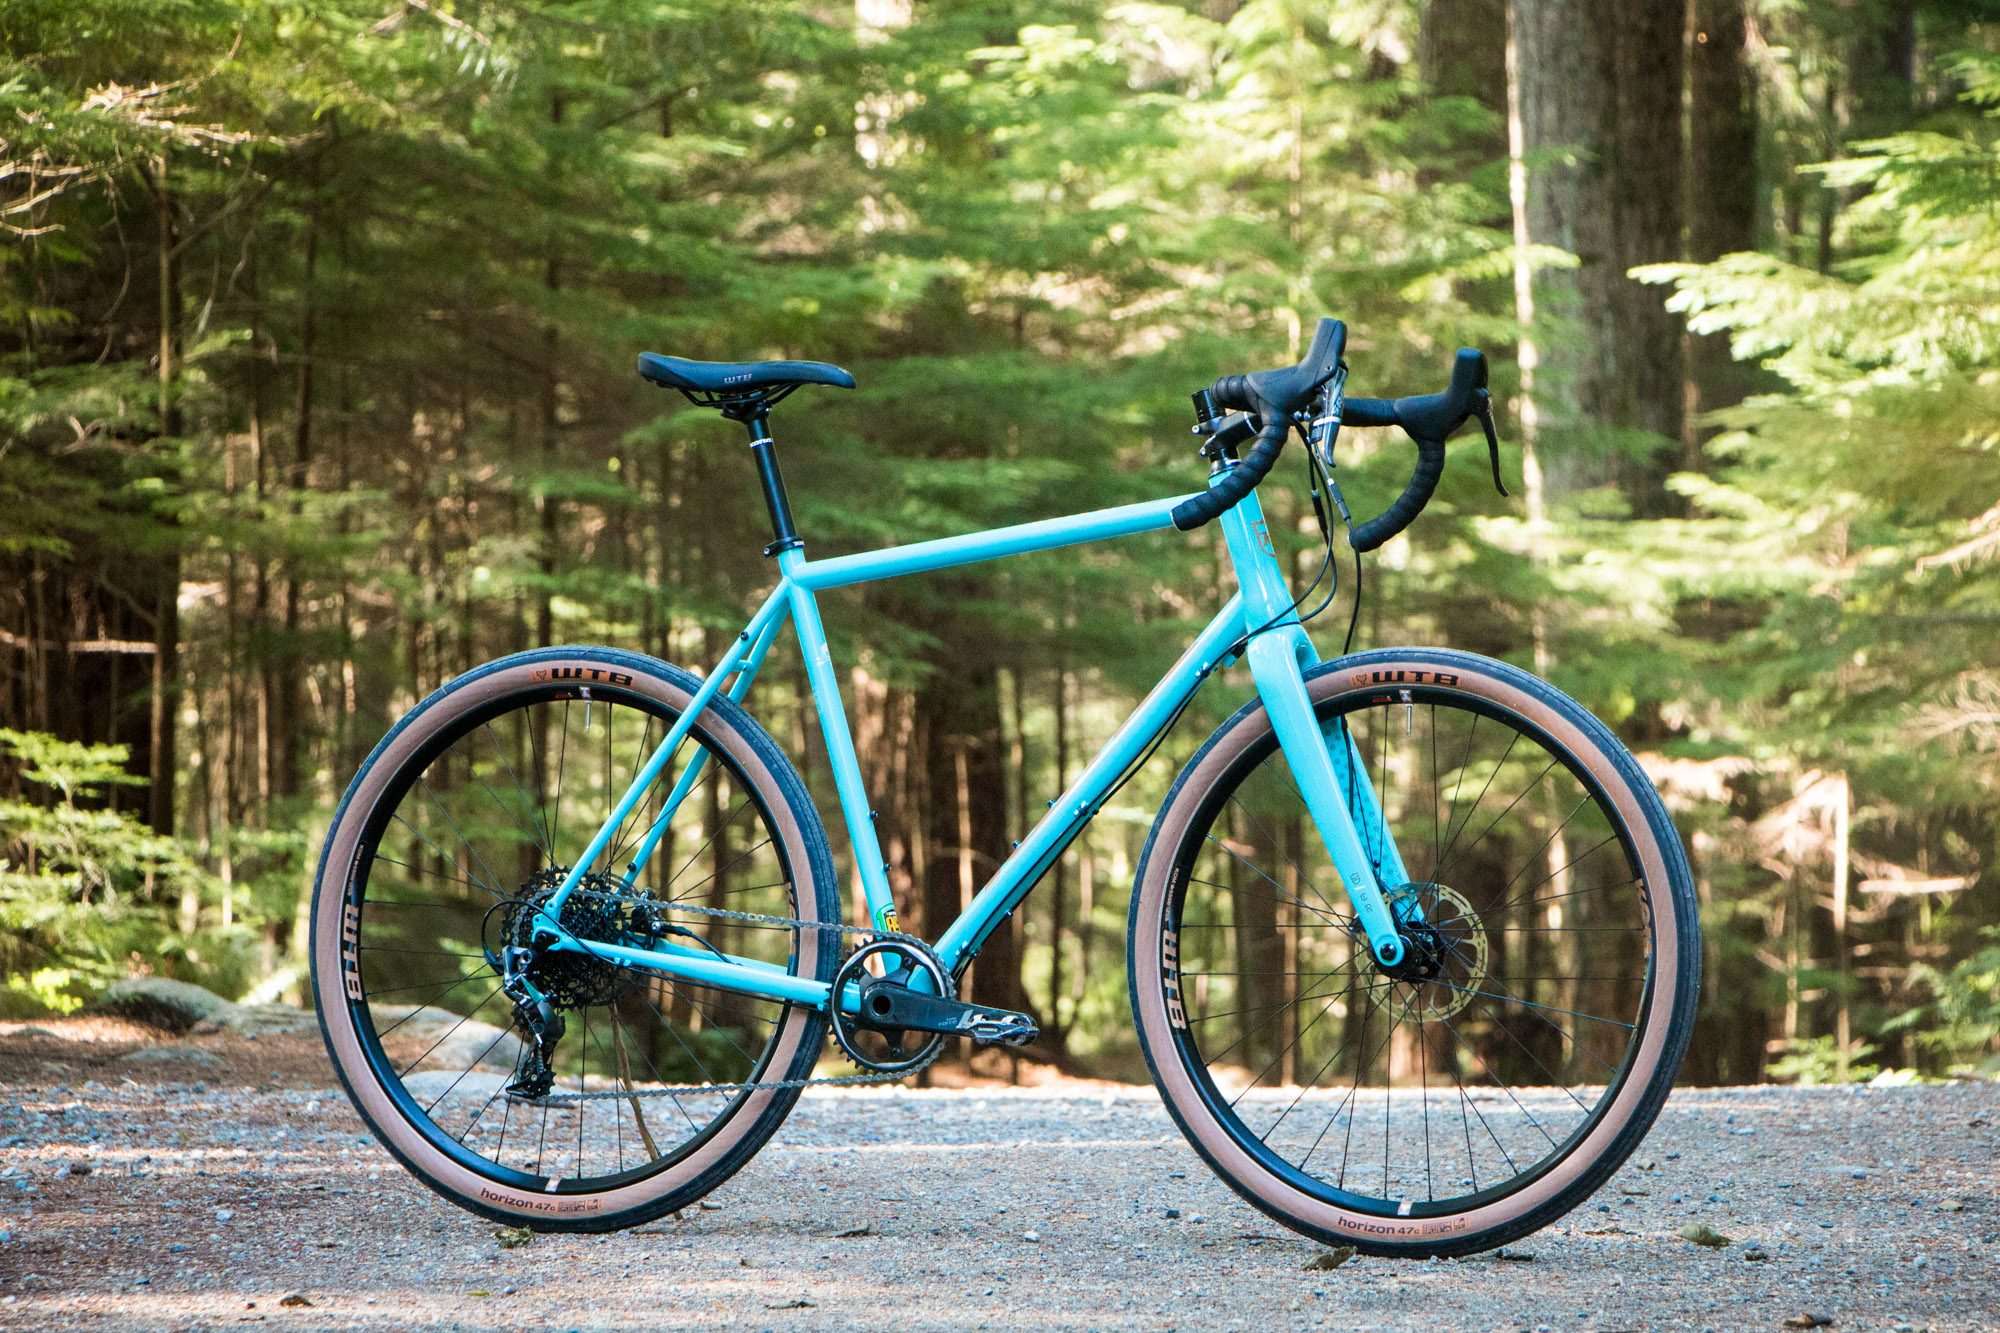 The New Kona Rove LTD is 650B and Reynolds 853 | The Radavist